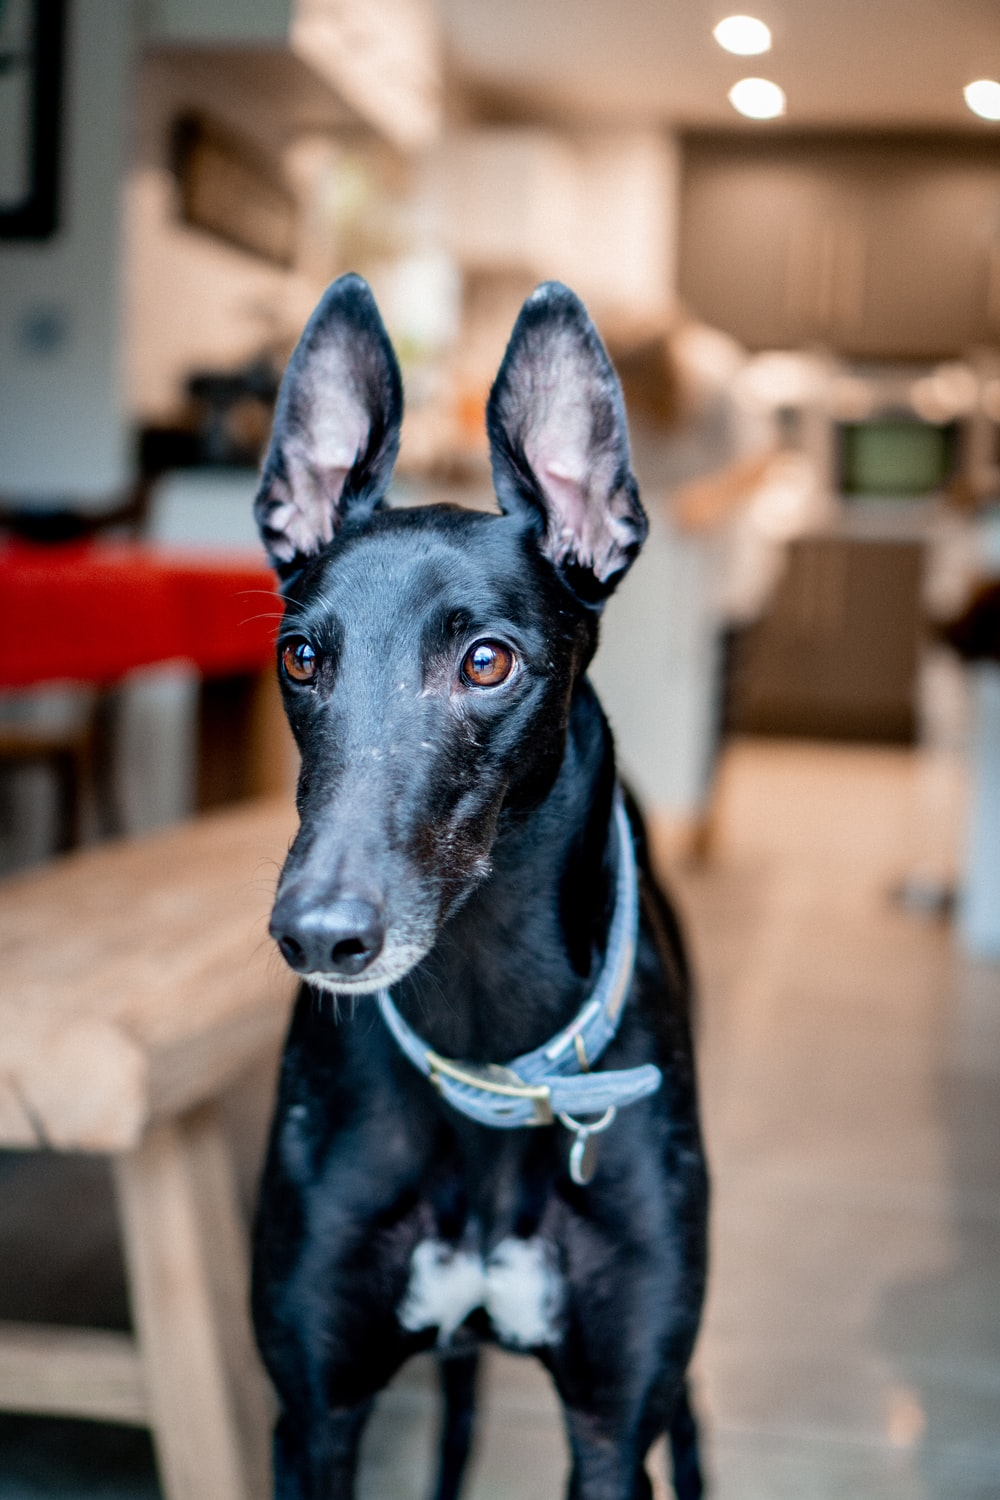 black short coated dog with blue collar